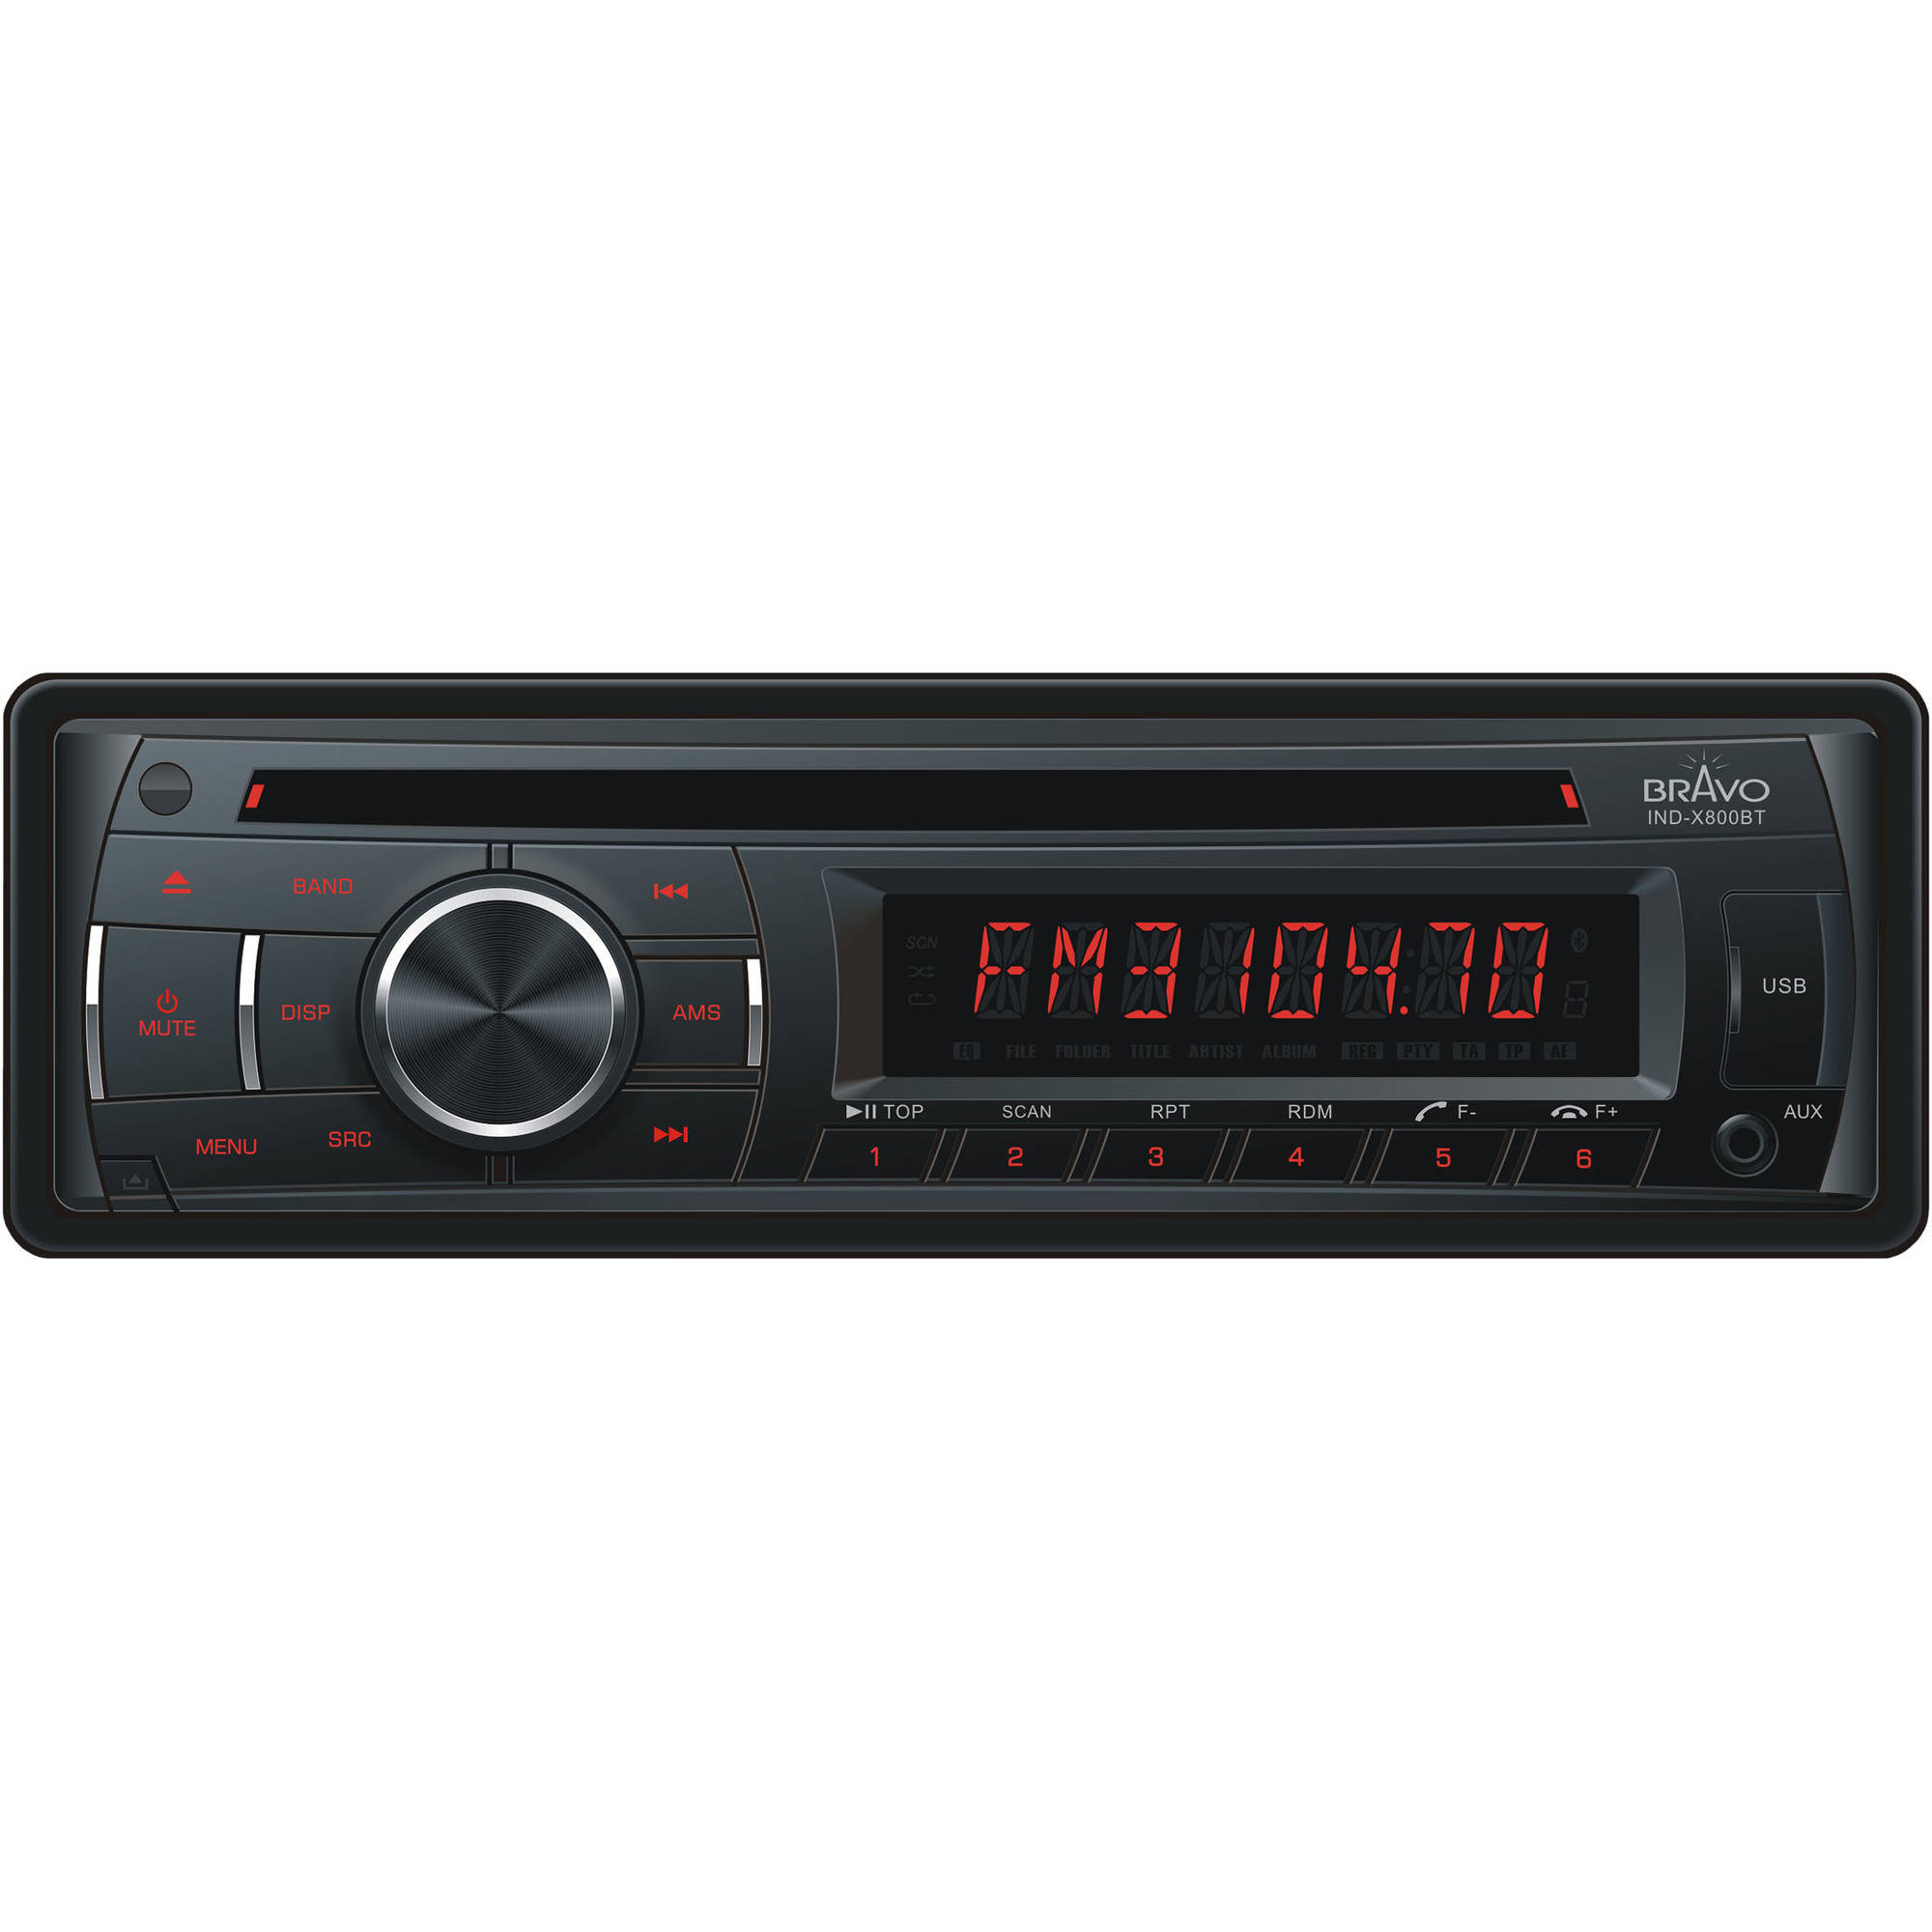 Bravo View IND-X800BT - In-Dash CD/MP3 Receiver with Bluetooth and